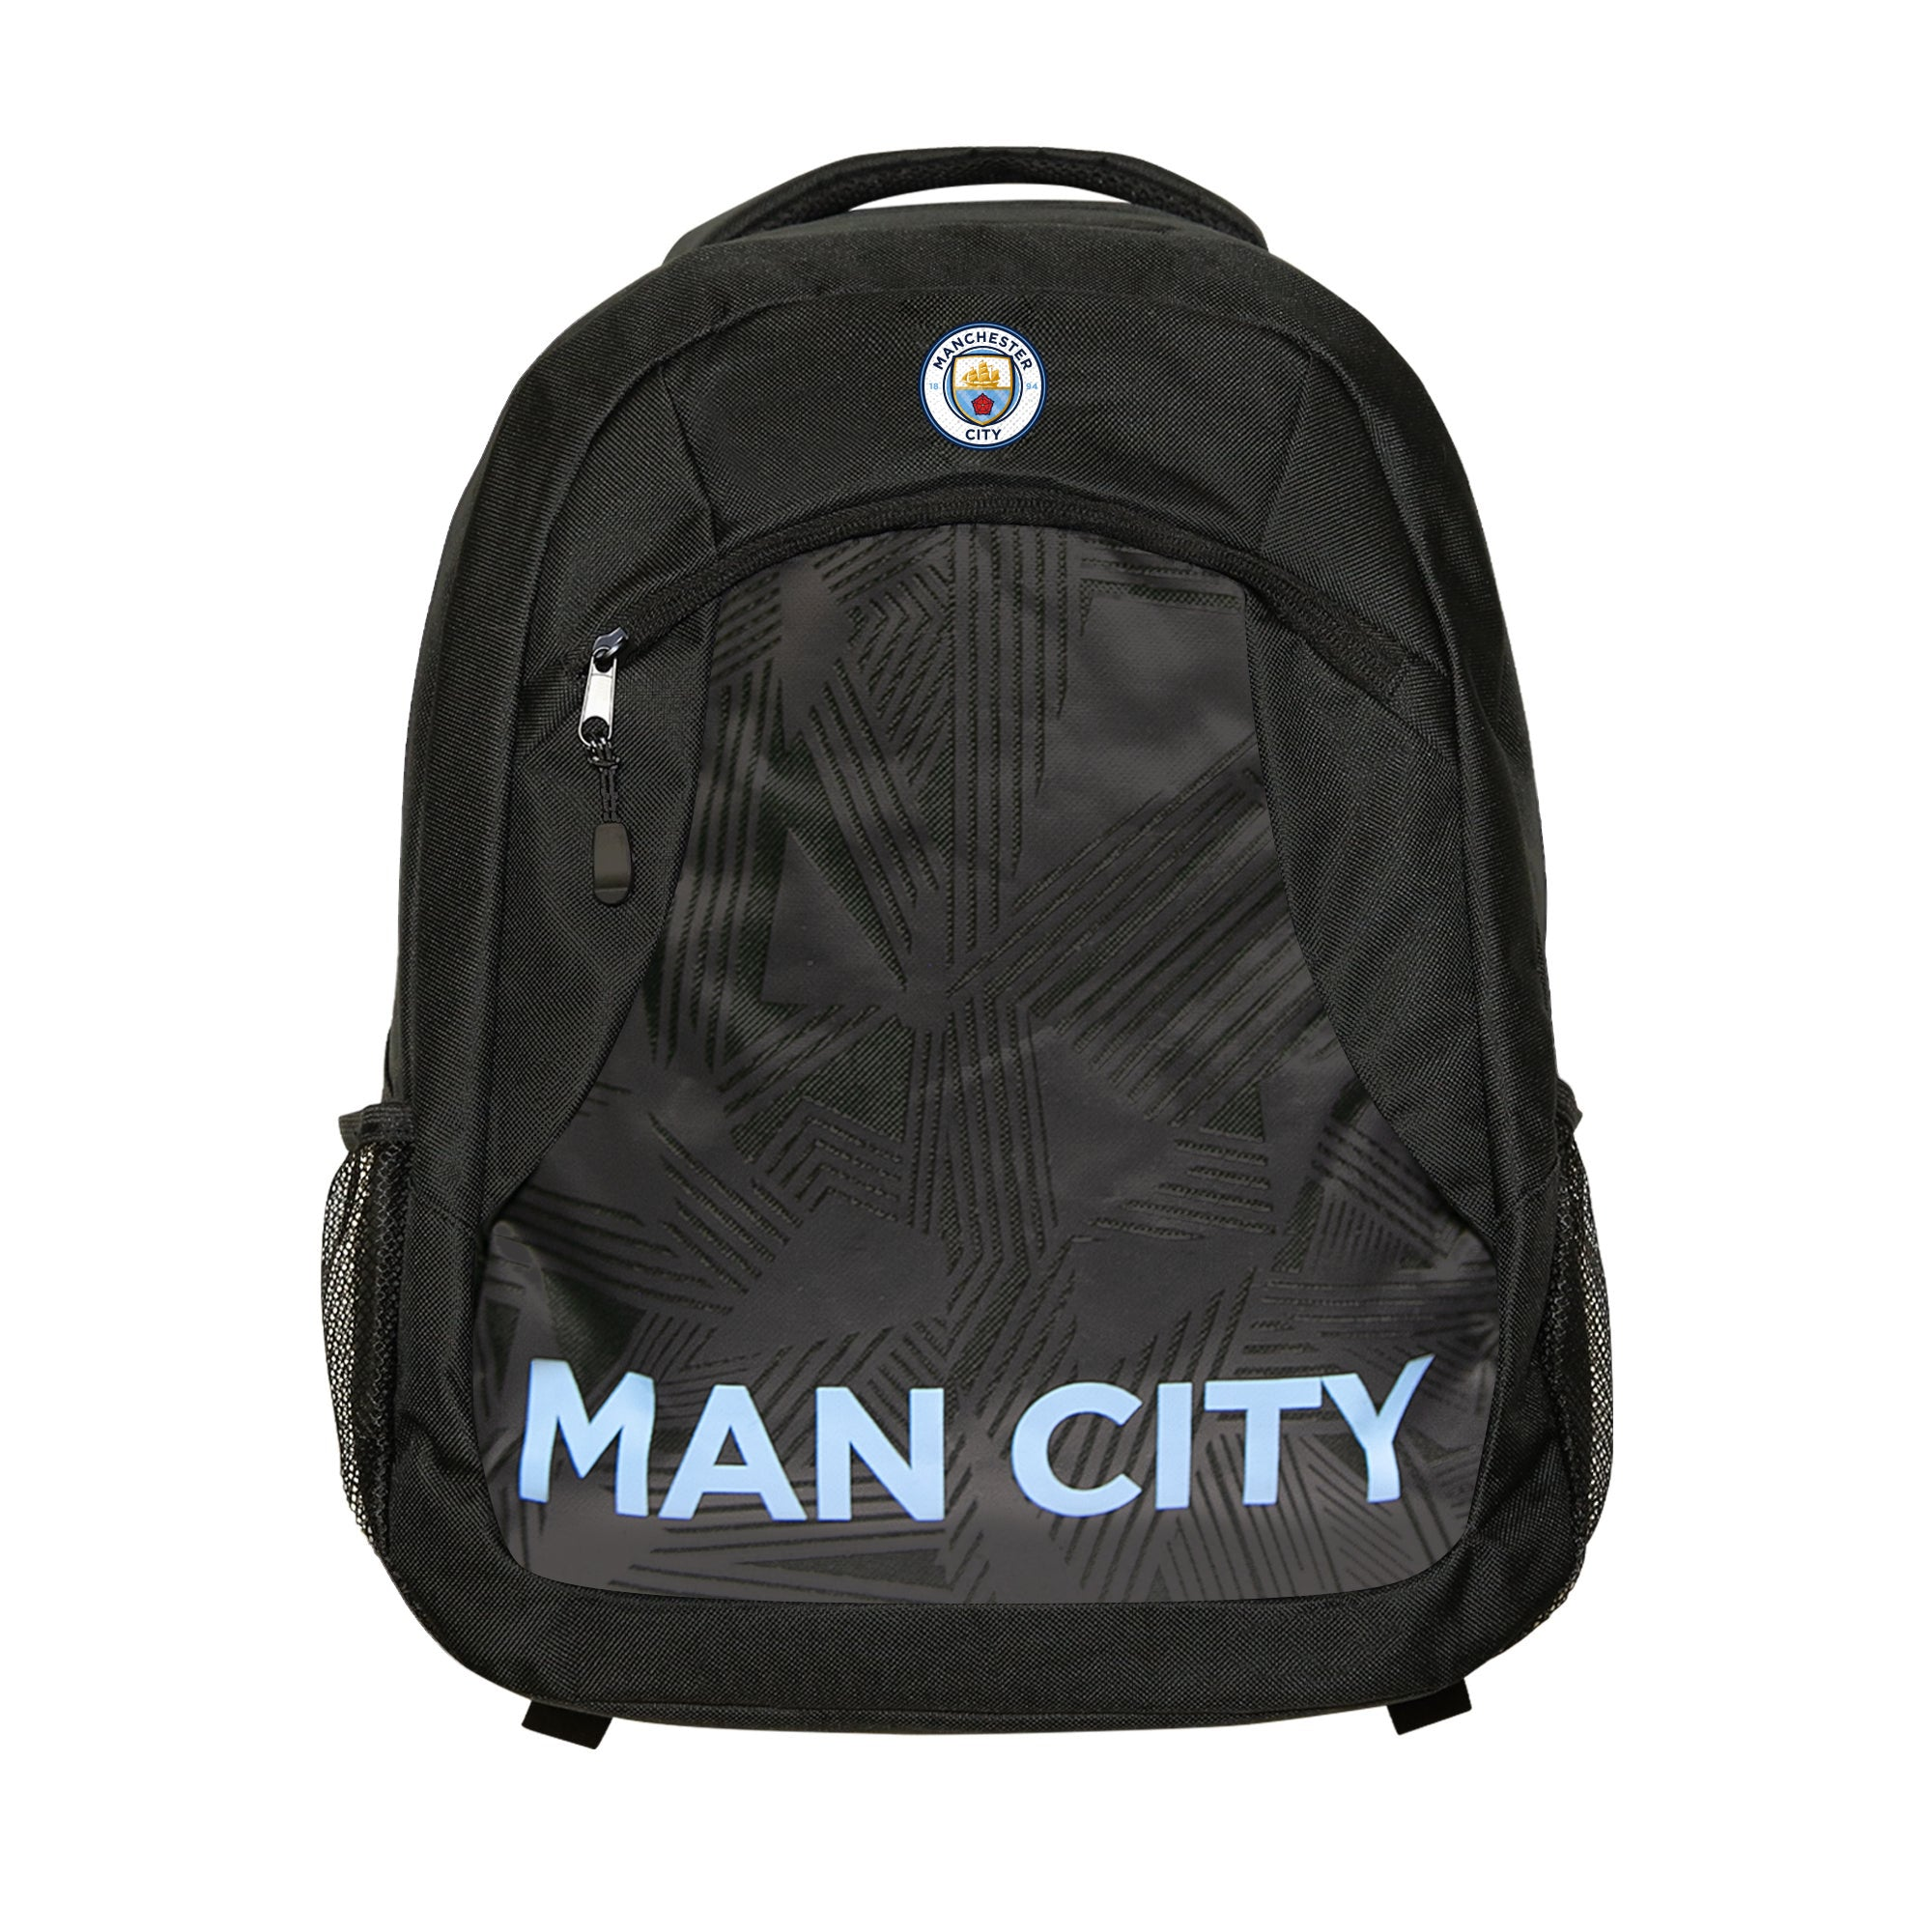 Official Man City Backpack by Icon Sports